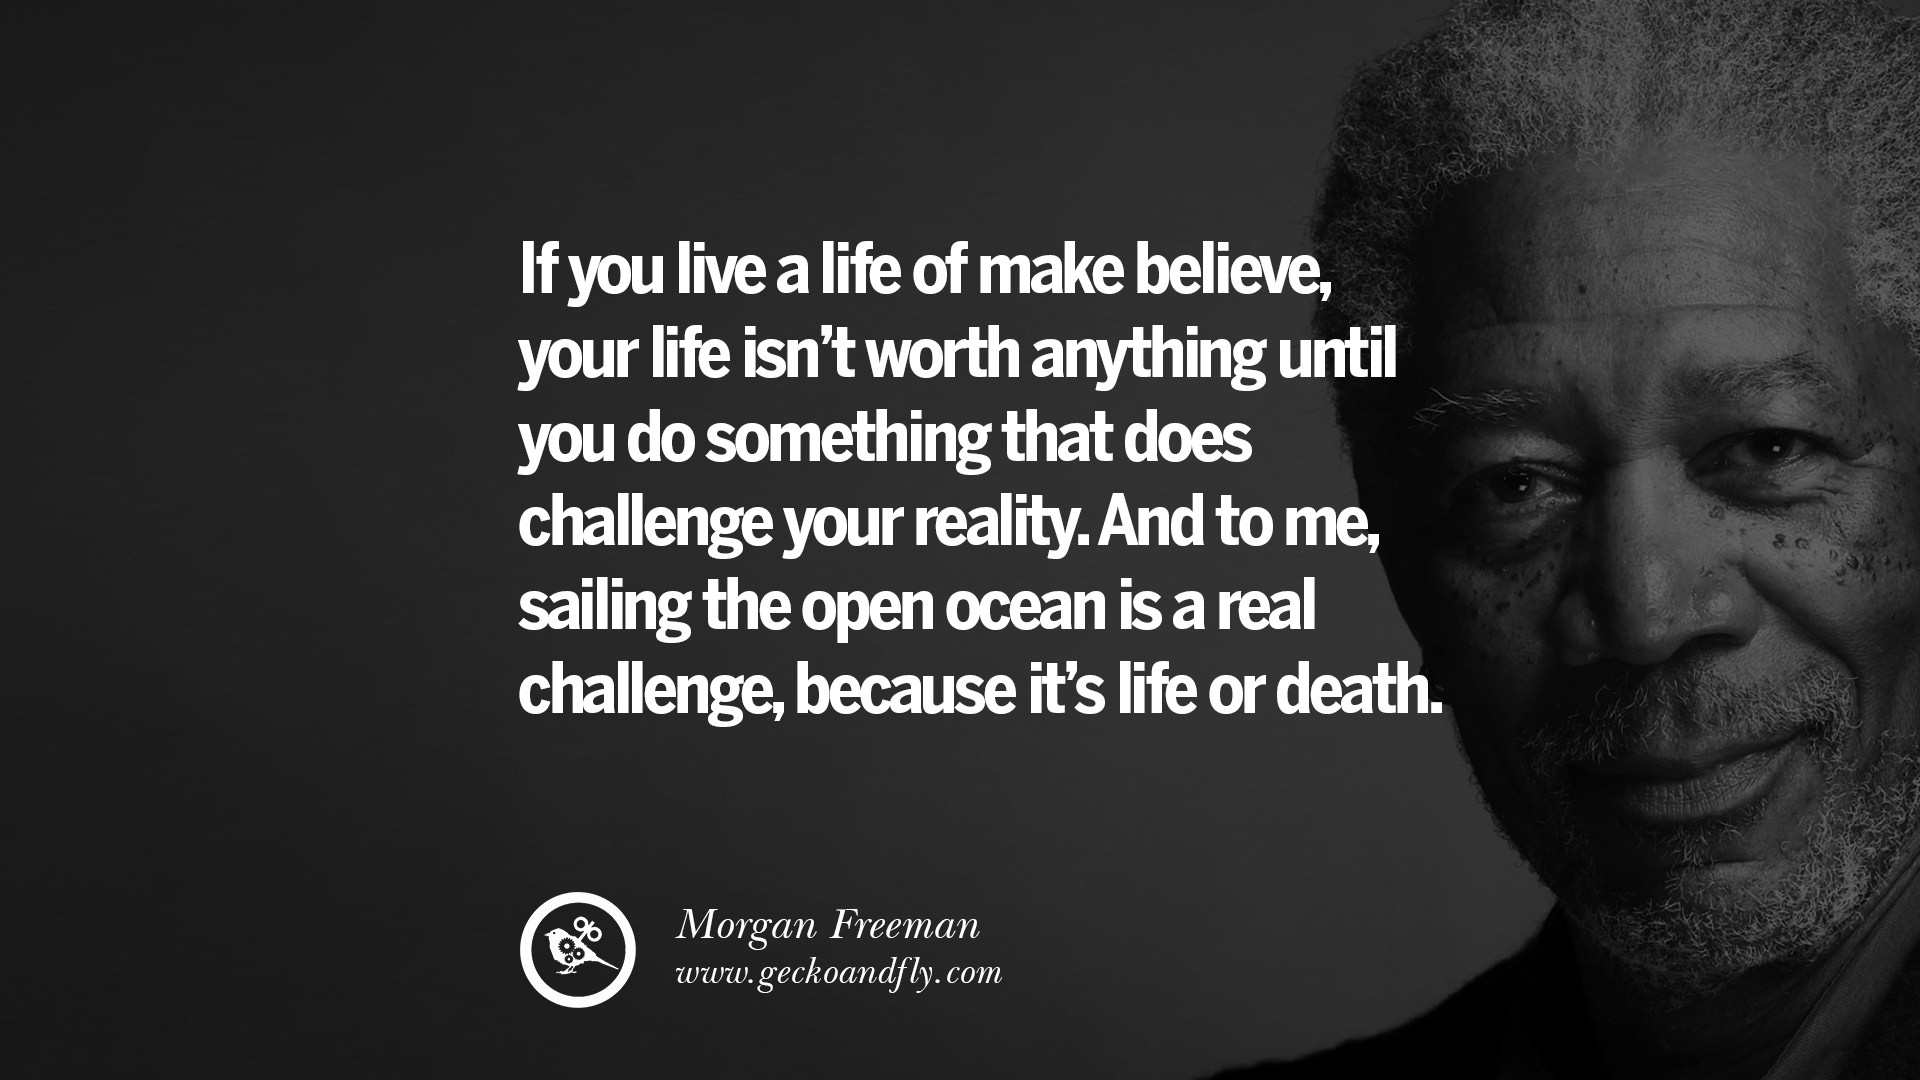 Quotes To Live Your Life By 10 Morgan Freeman Quotes On Life Death Success And Struggle